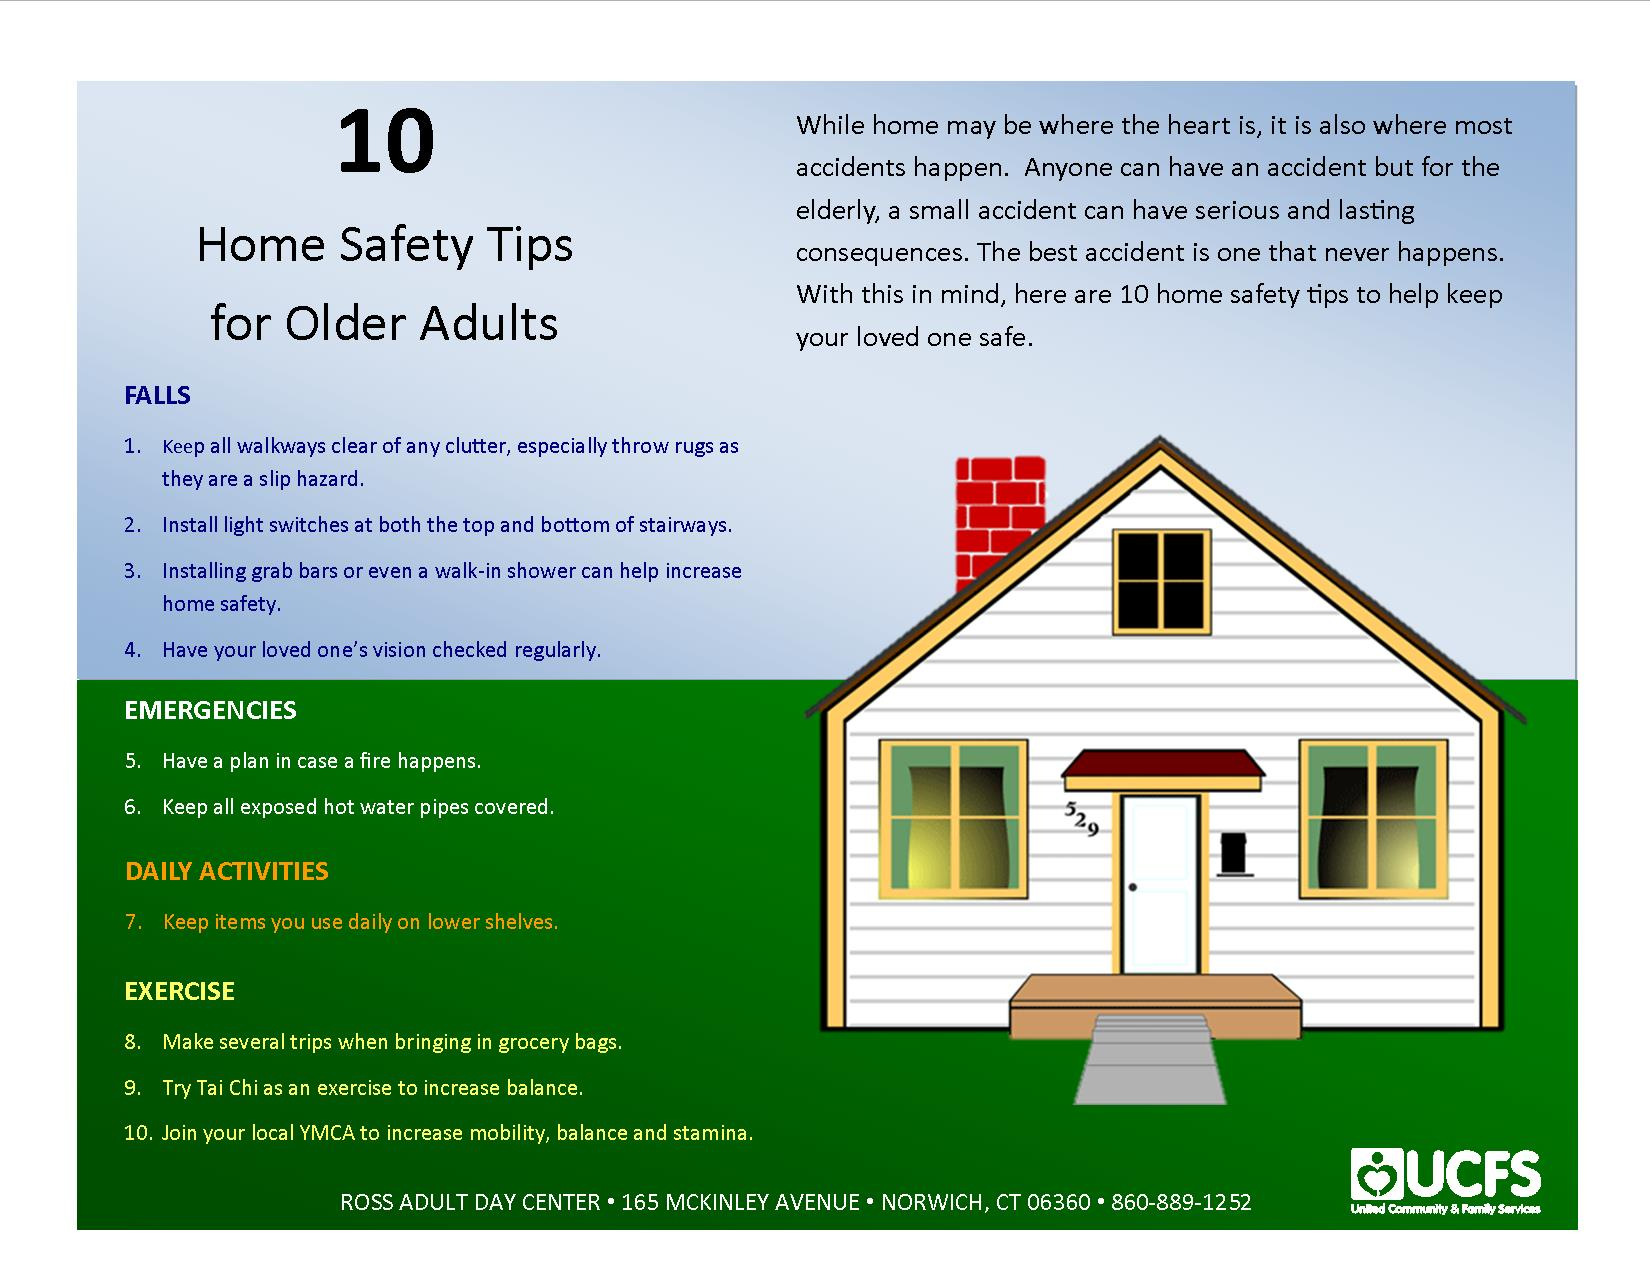 10 Home Safety Tips For Older Adults